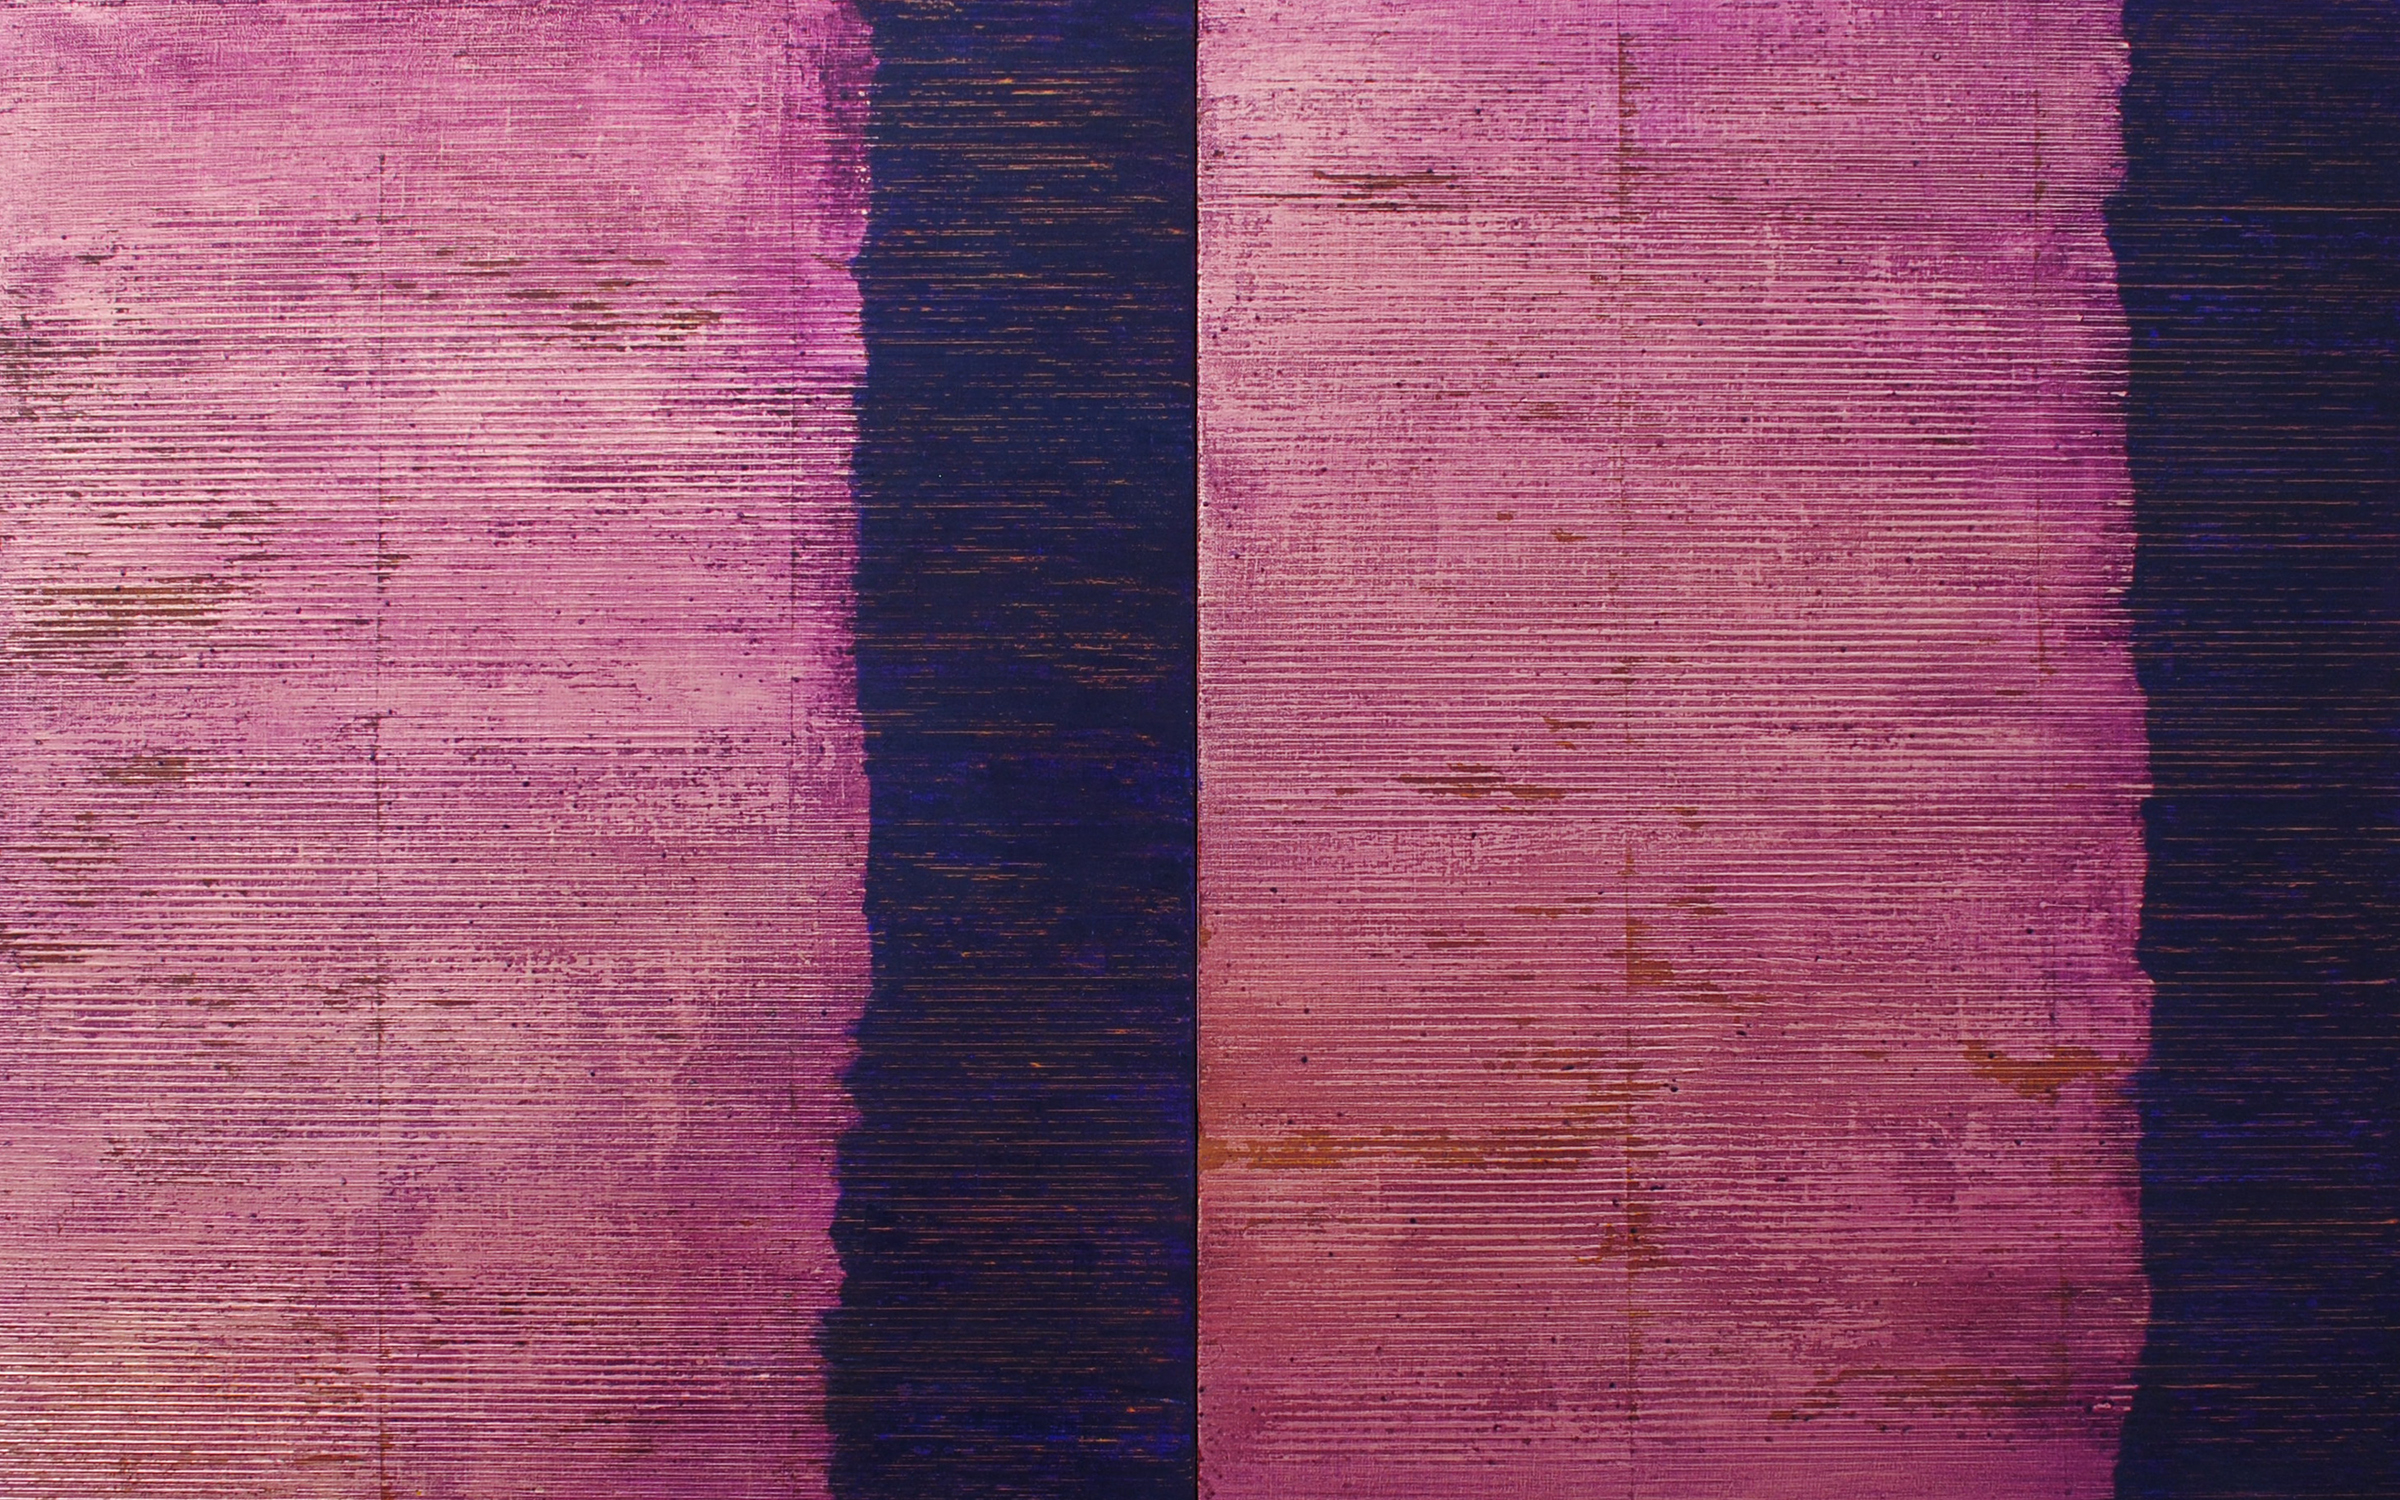 Linea Terminale: 4.13, 2013, Oil, copper leaf on linen over panels, 20 x 32 inches.